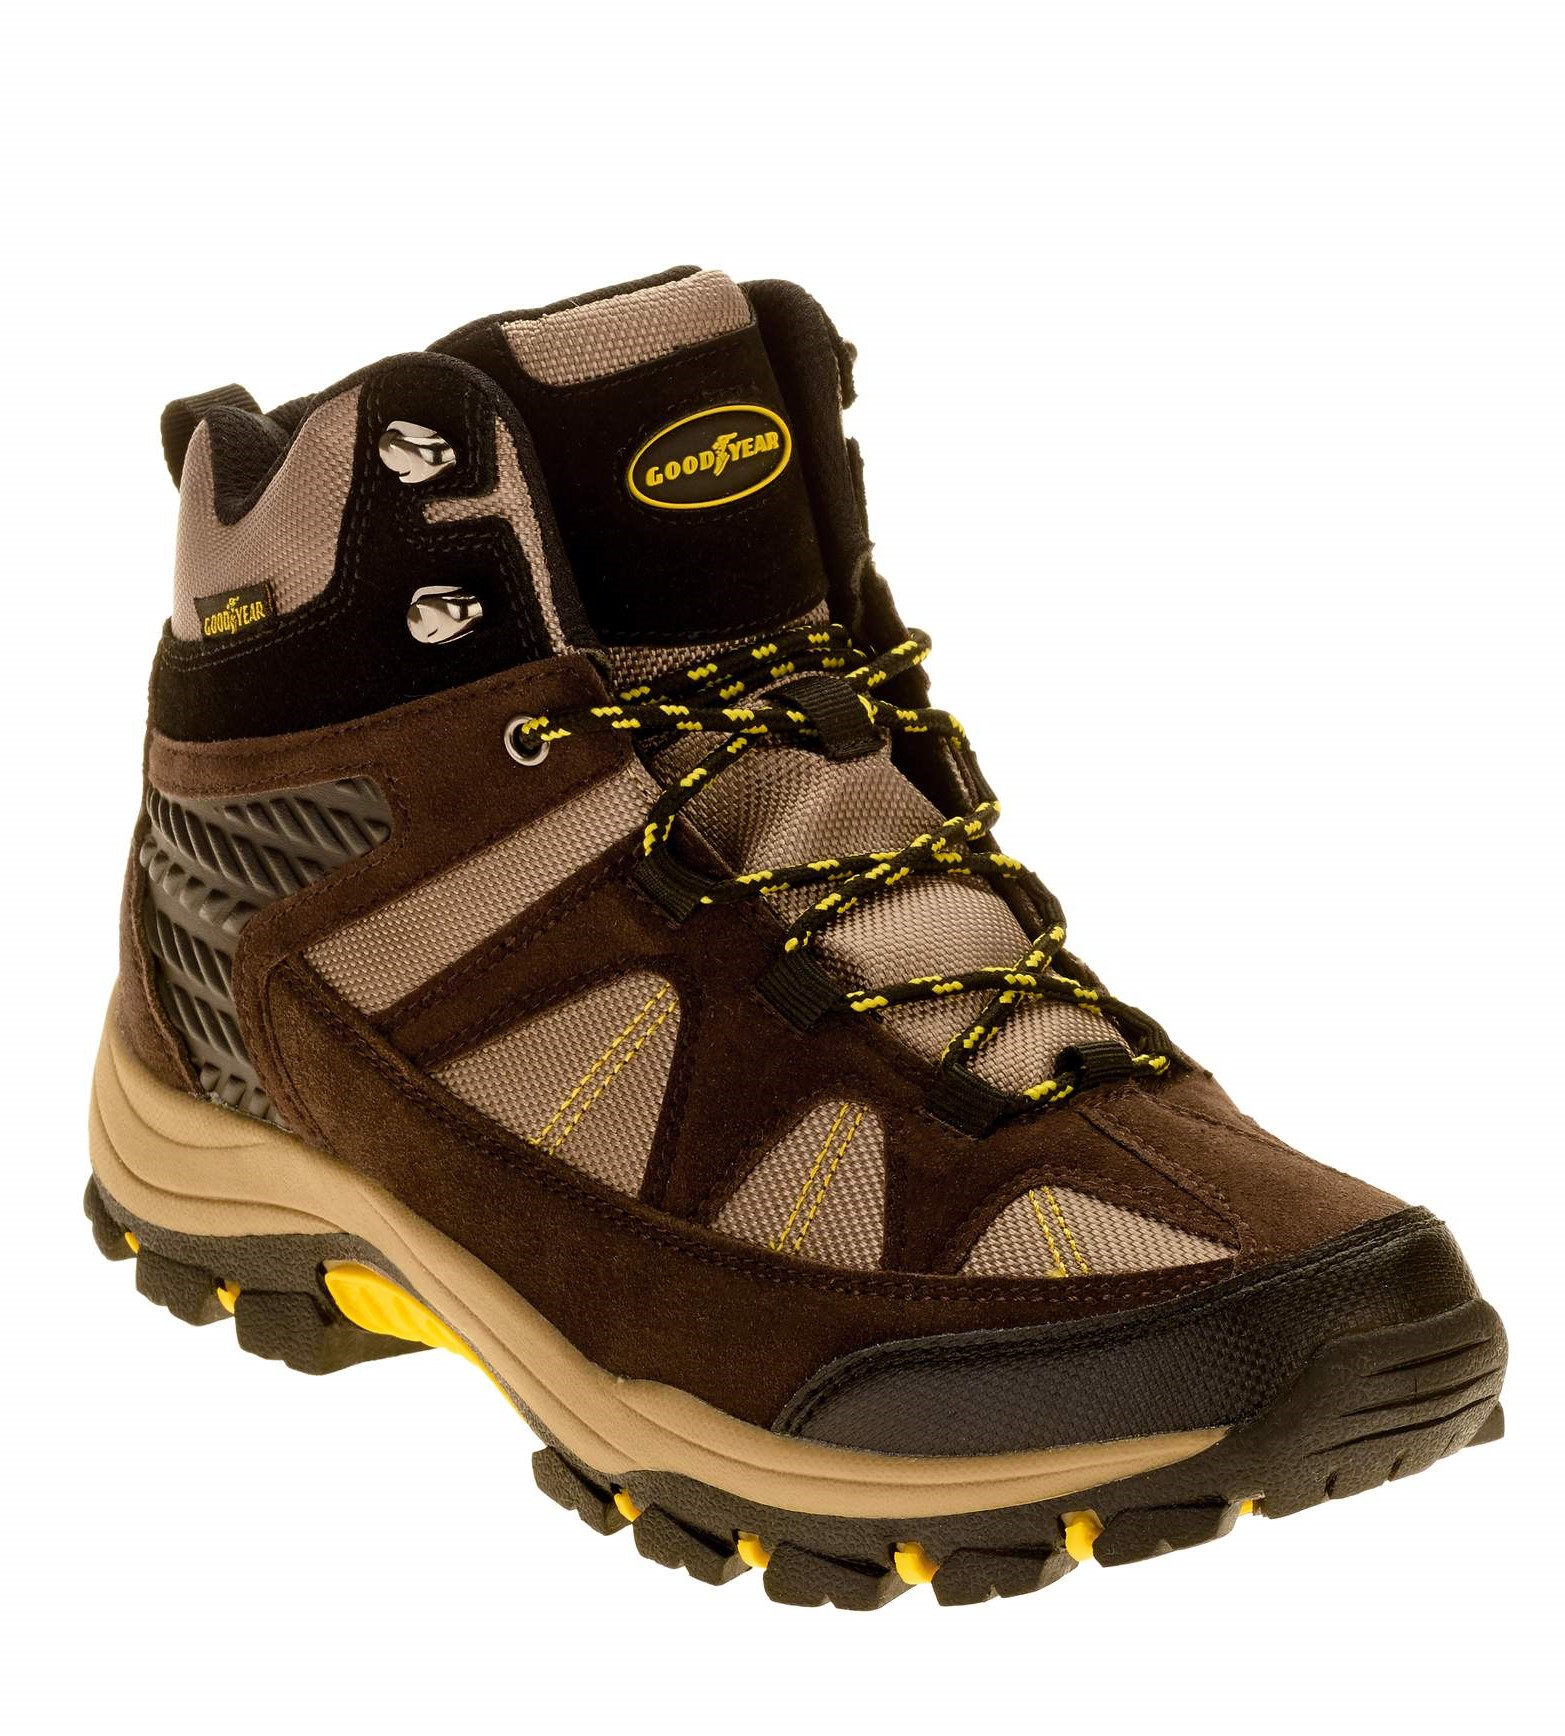 Goodyear Tires - Goodyear Men's Teton Outdoor Hiker Work Boot - Walmart.com  - Walmart.com